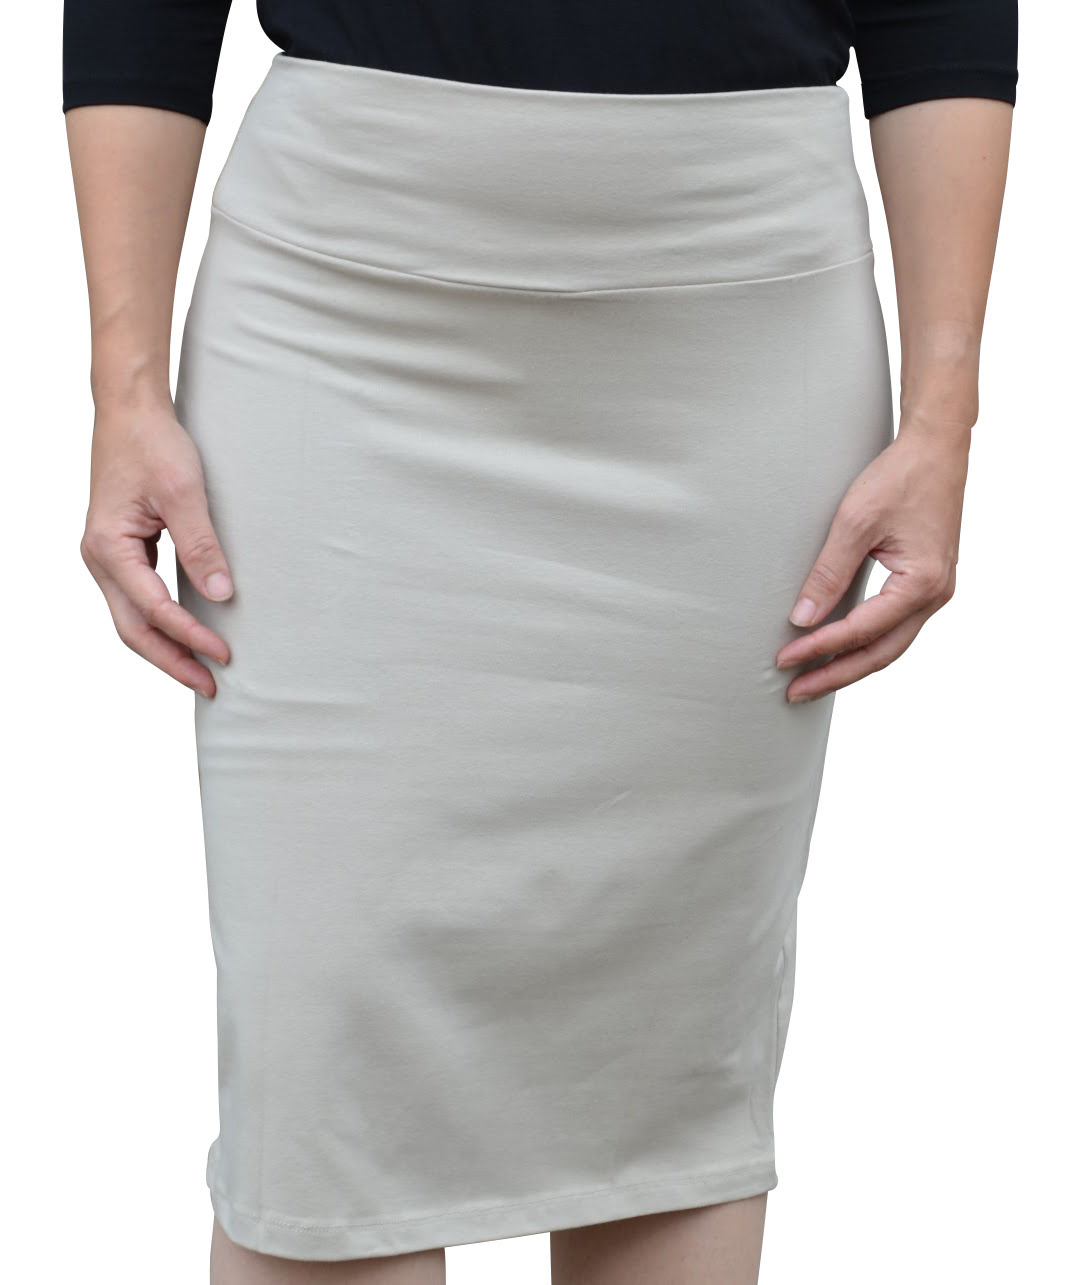 680cee6fc1 Women's Knee Length Skirts. Modern, Yet Modest Clothing. Casual ...